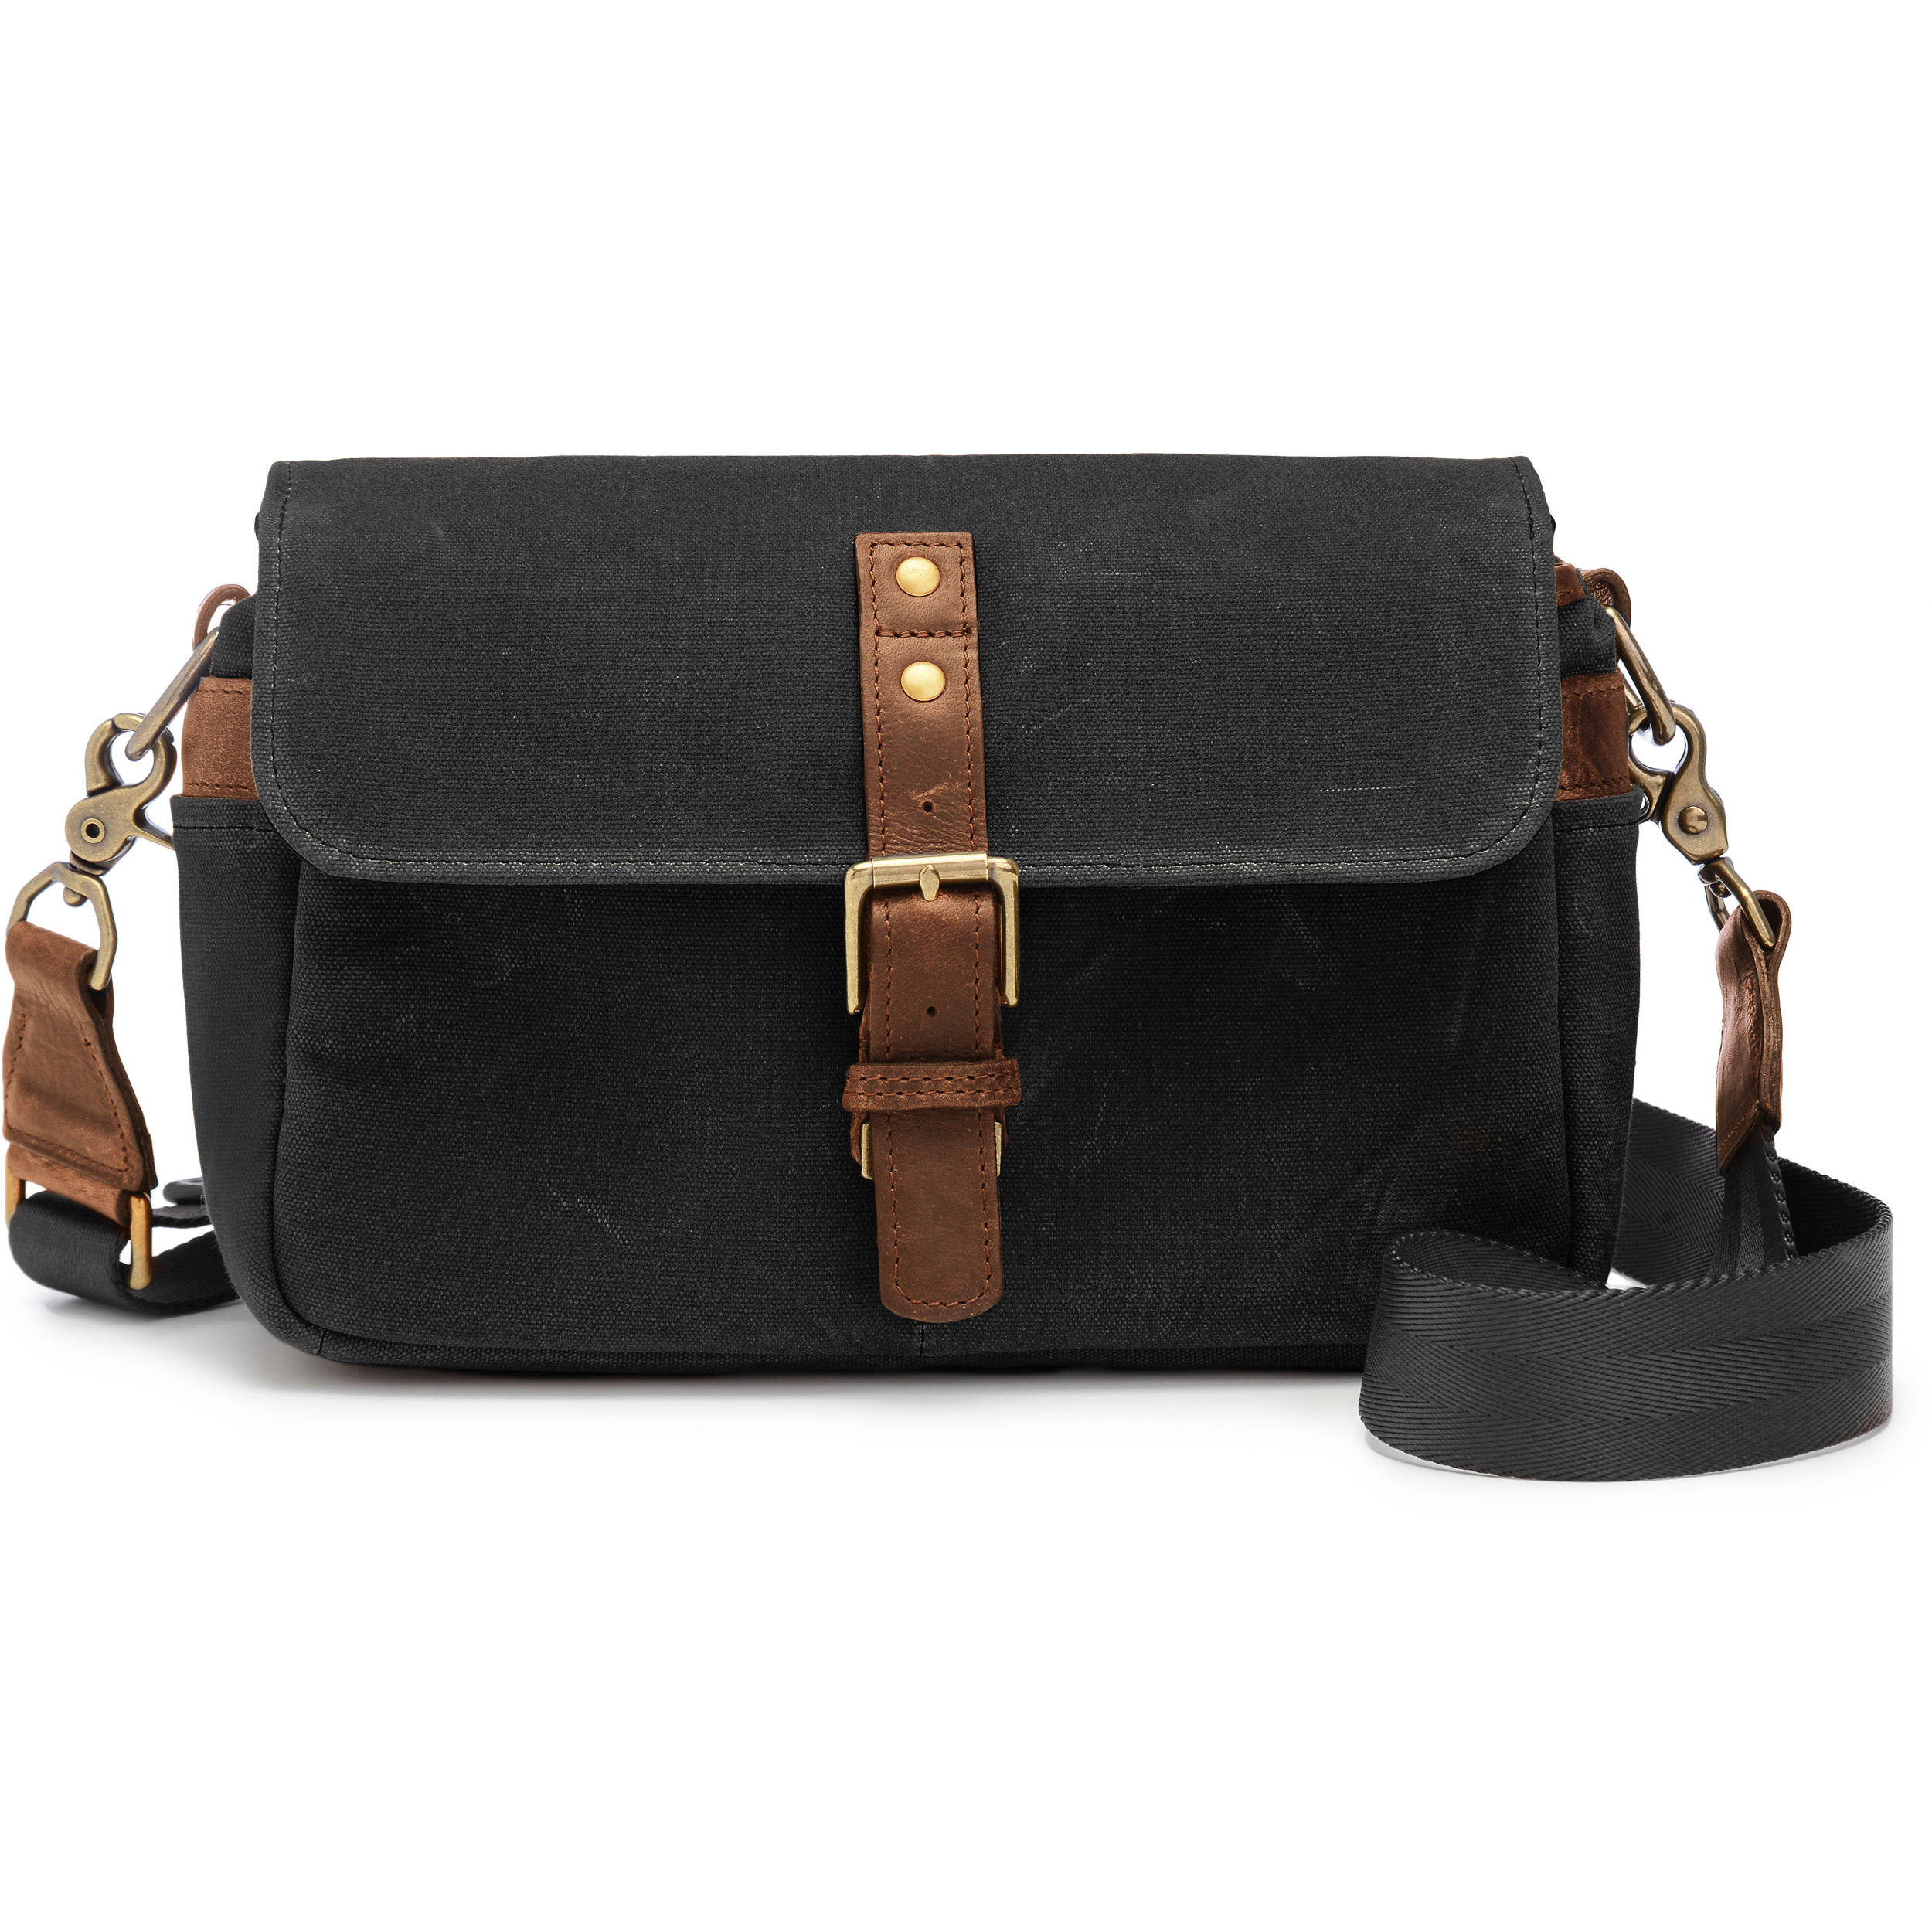 Ona Bowery Camera Bag Canvas Black